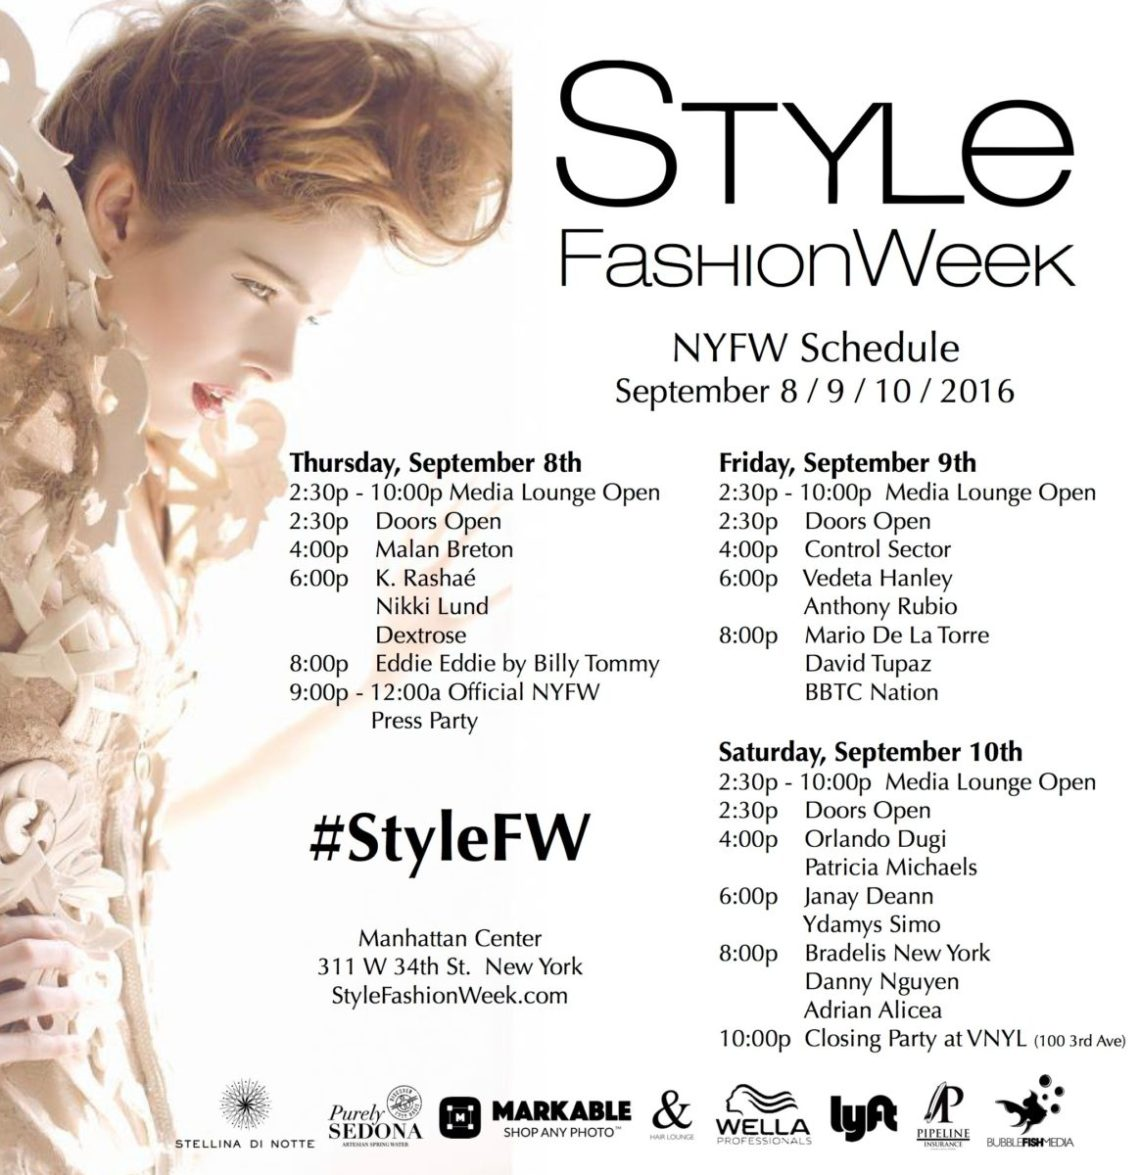 Style Fashion Week - NYFW Schedule